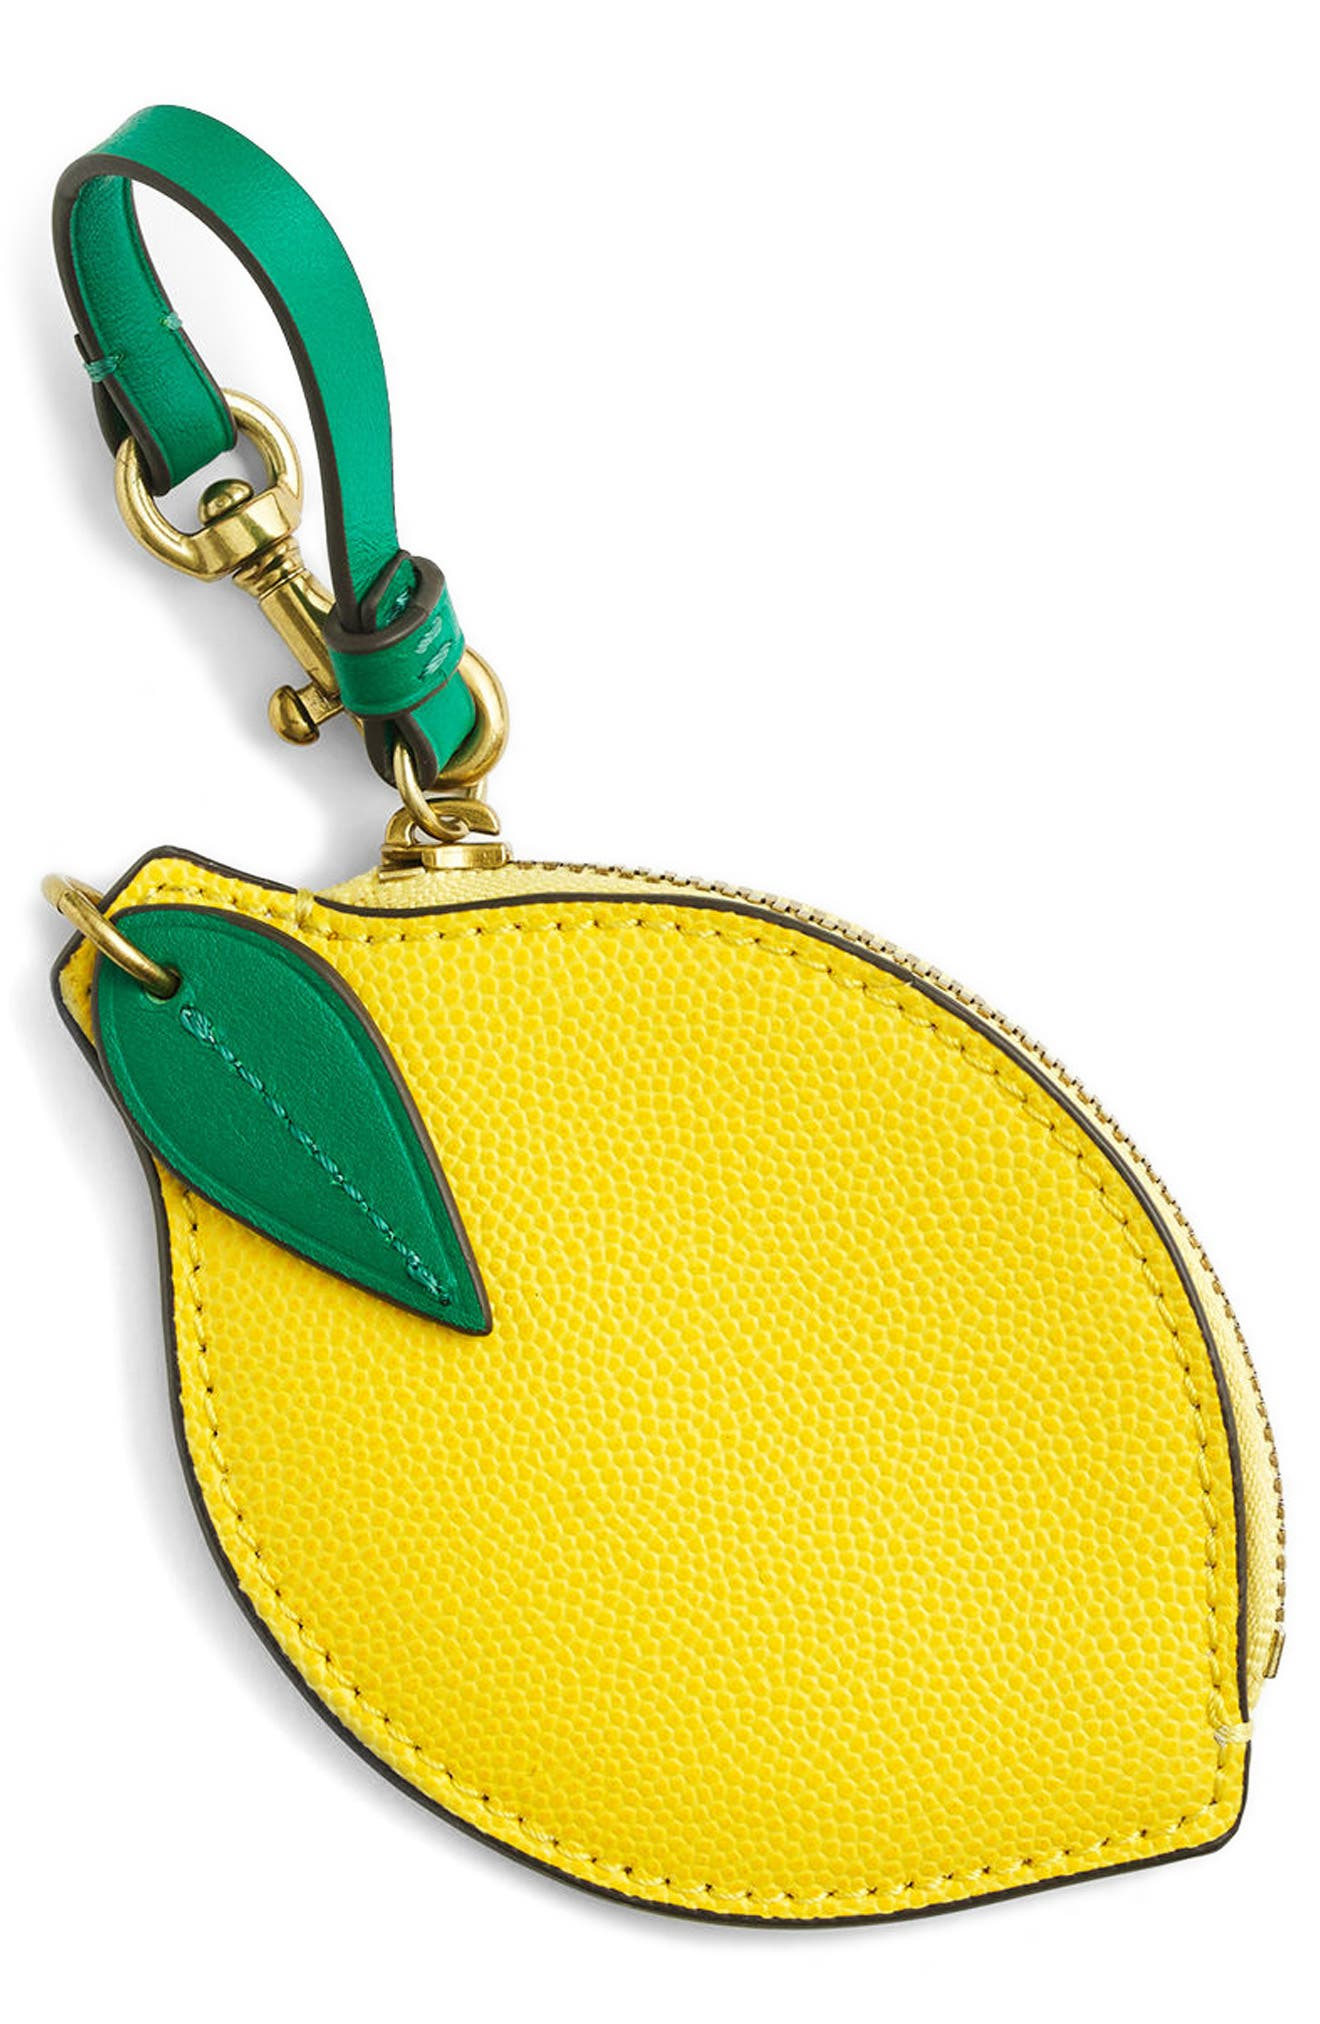 J.Crew Leather Lemon Coin Purse